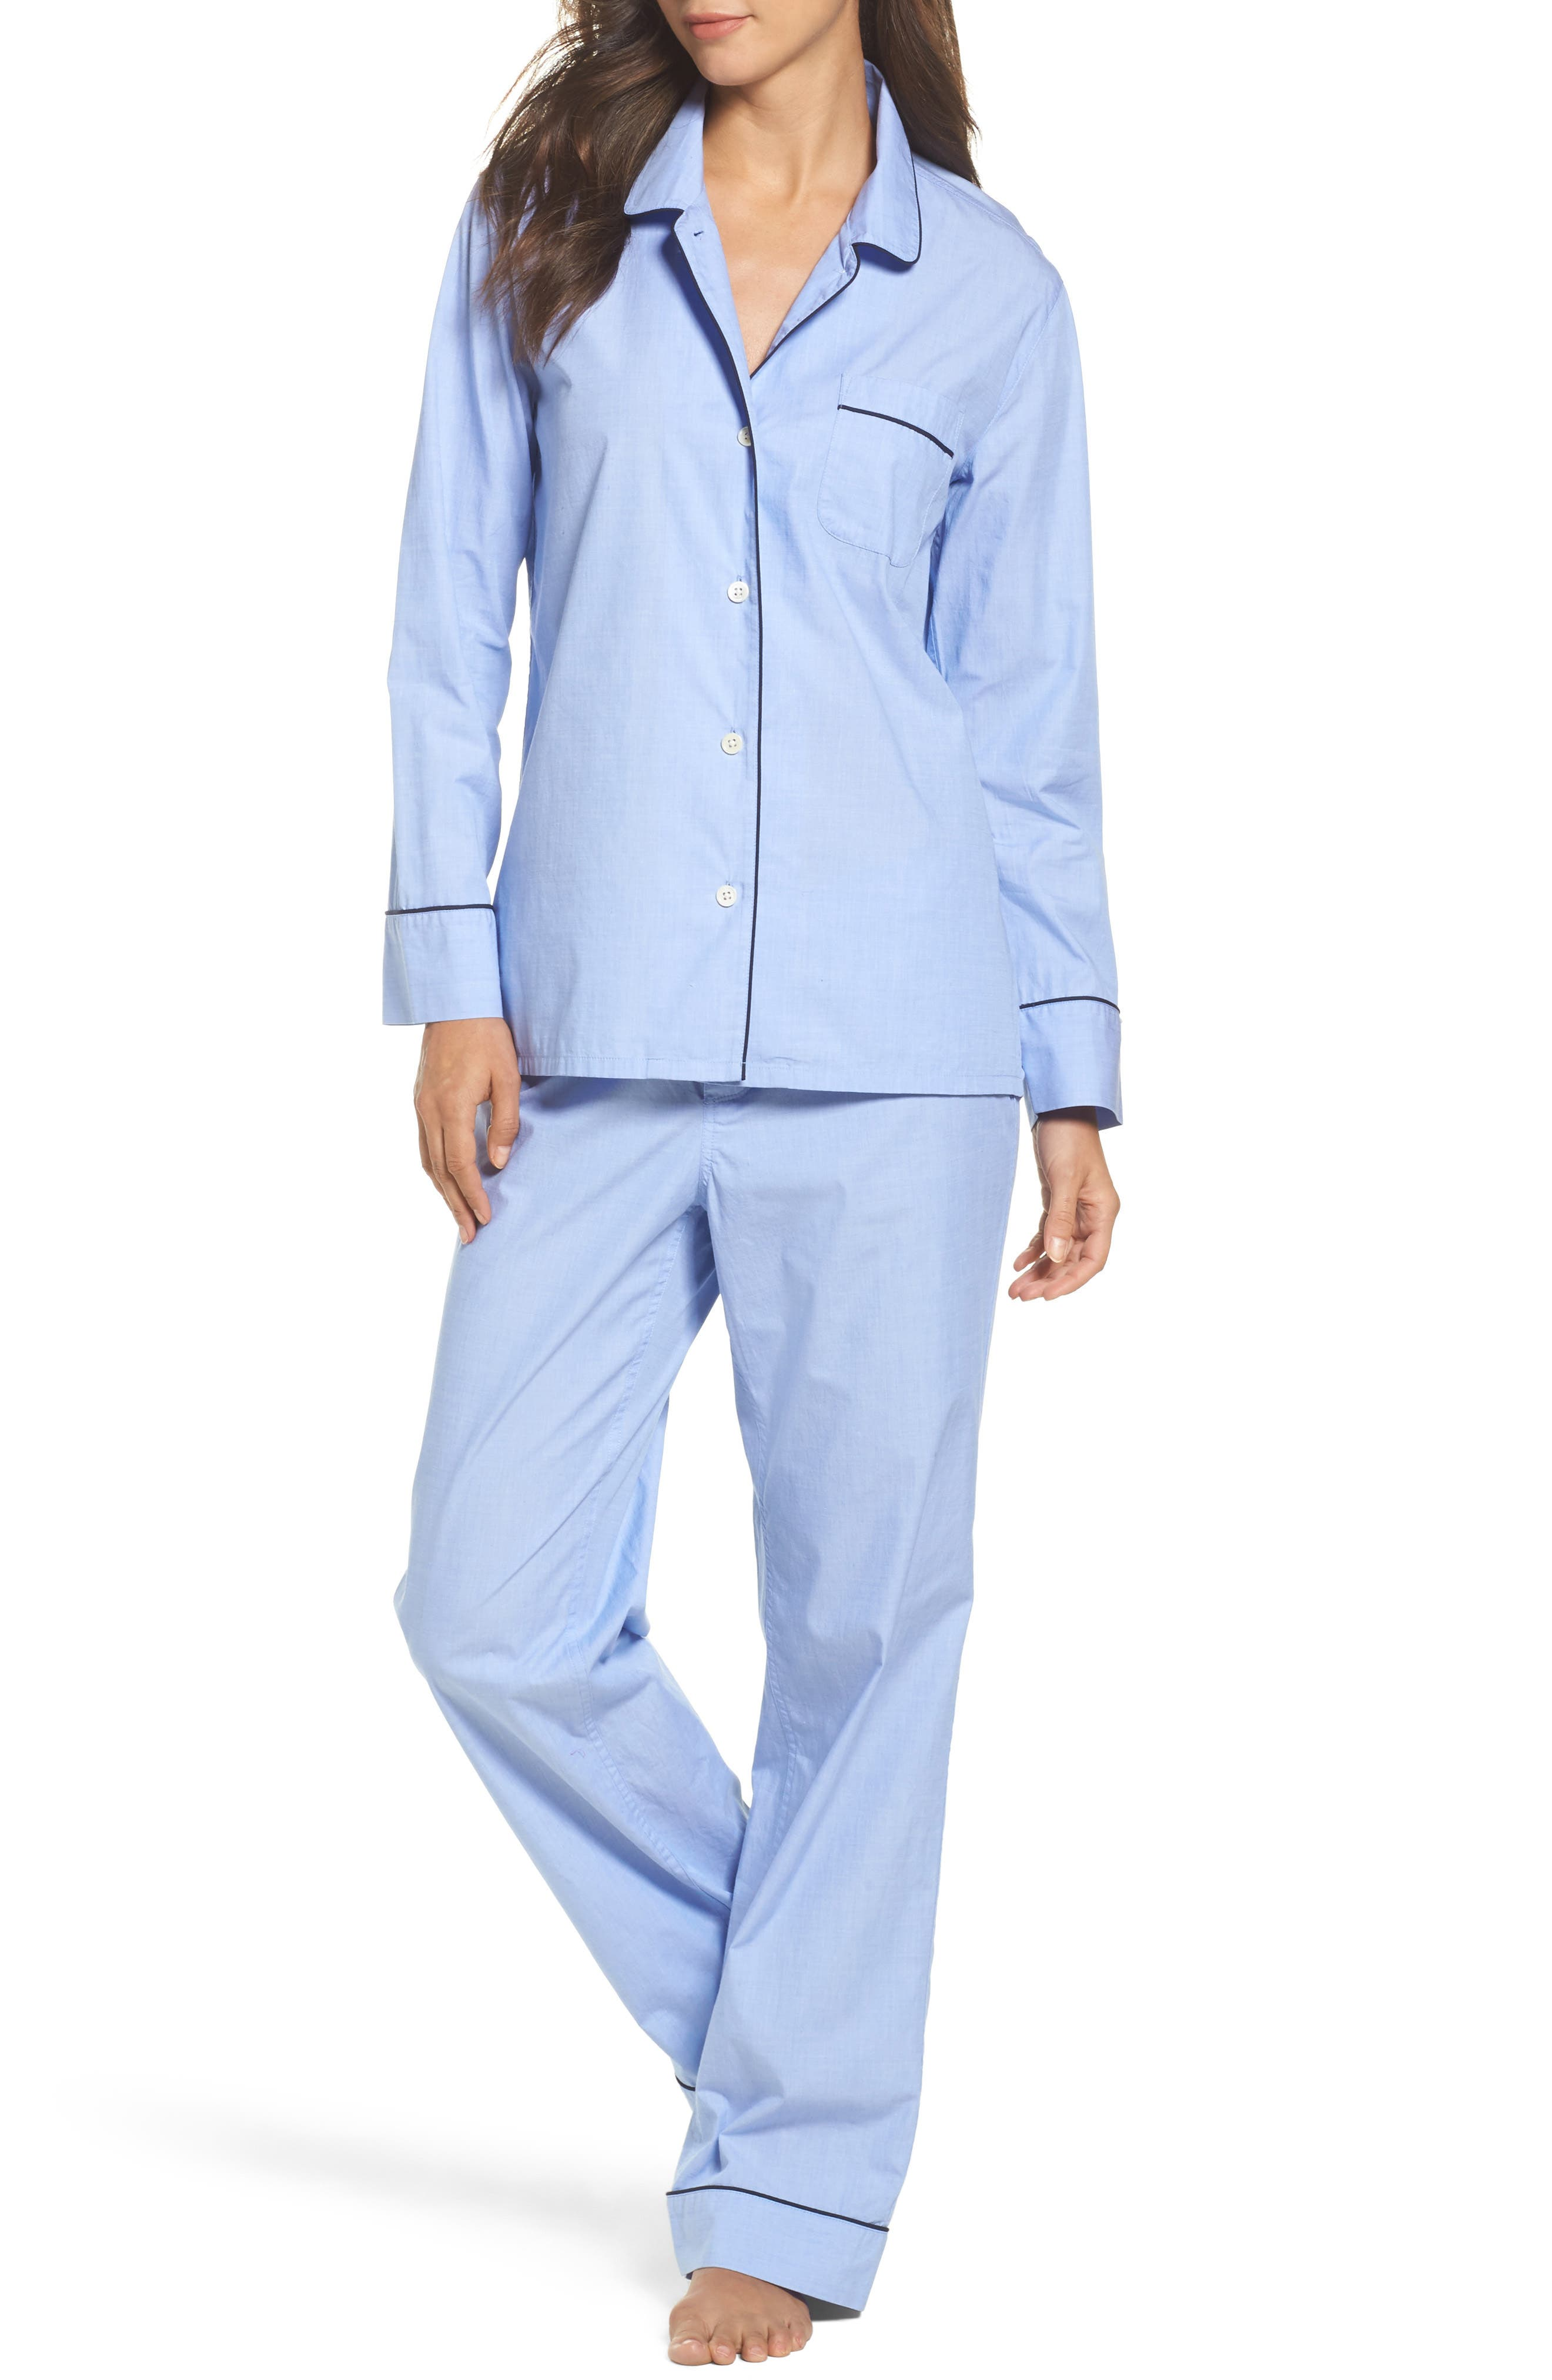 J.Crew Vintage Cotton Pajamas,                         Main,                         color, Hydrangea